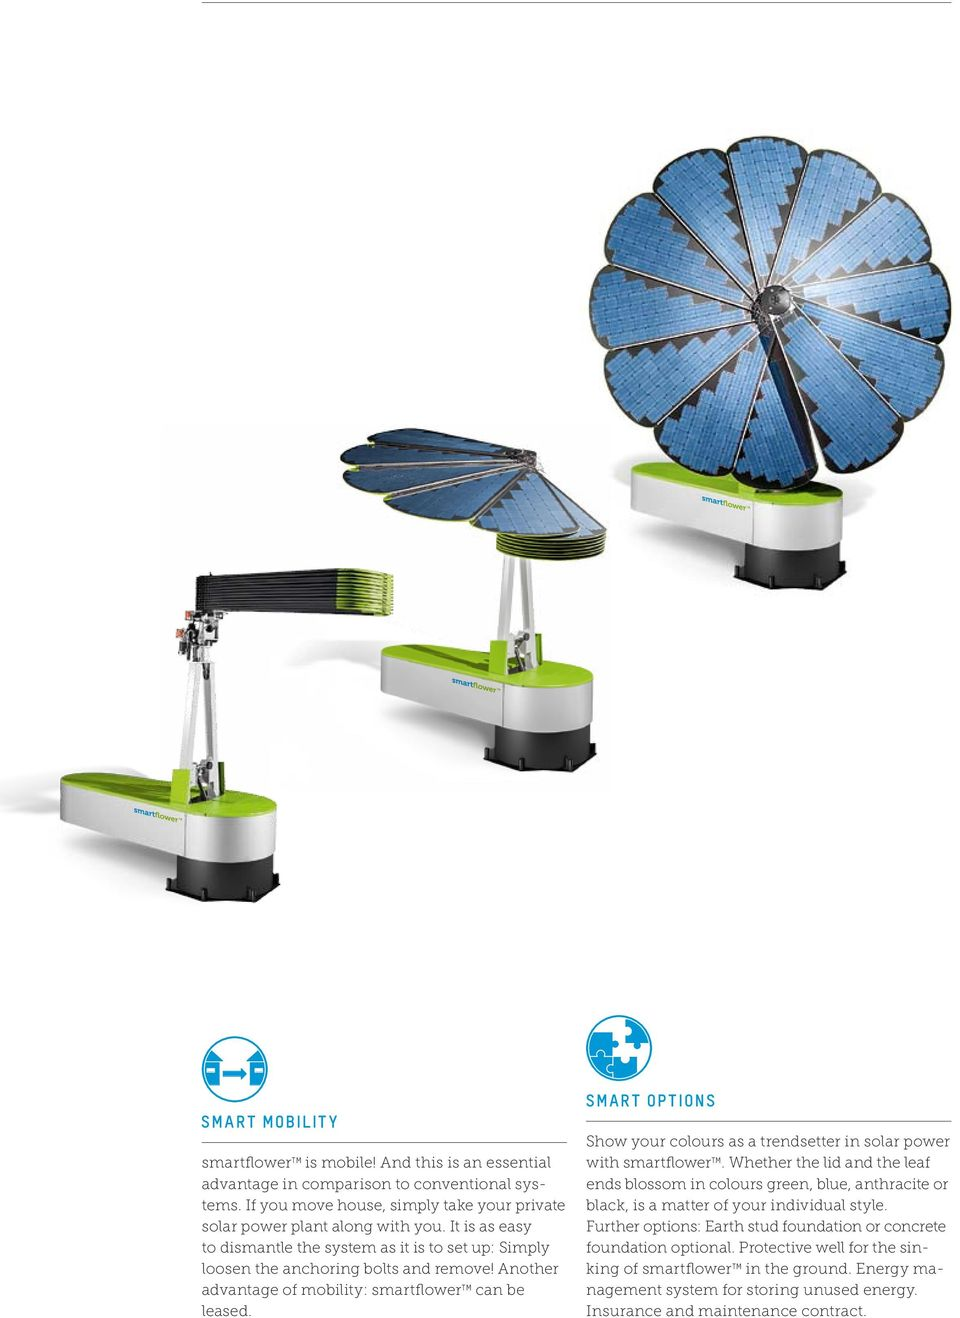 SMART OPTIONS Show your colours as a trendsetter in solar power with smartflower TM.